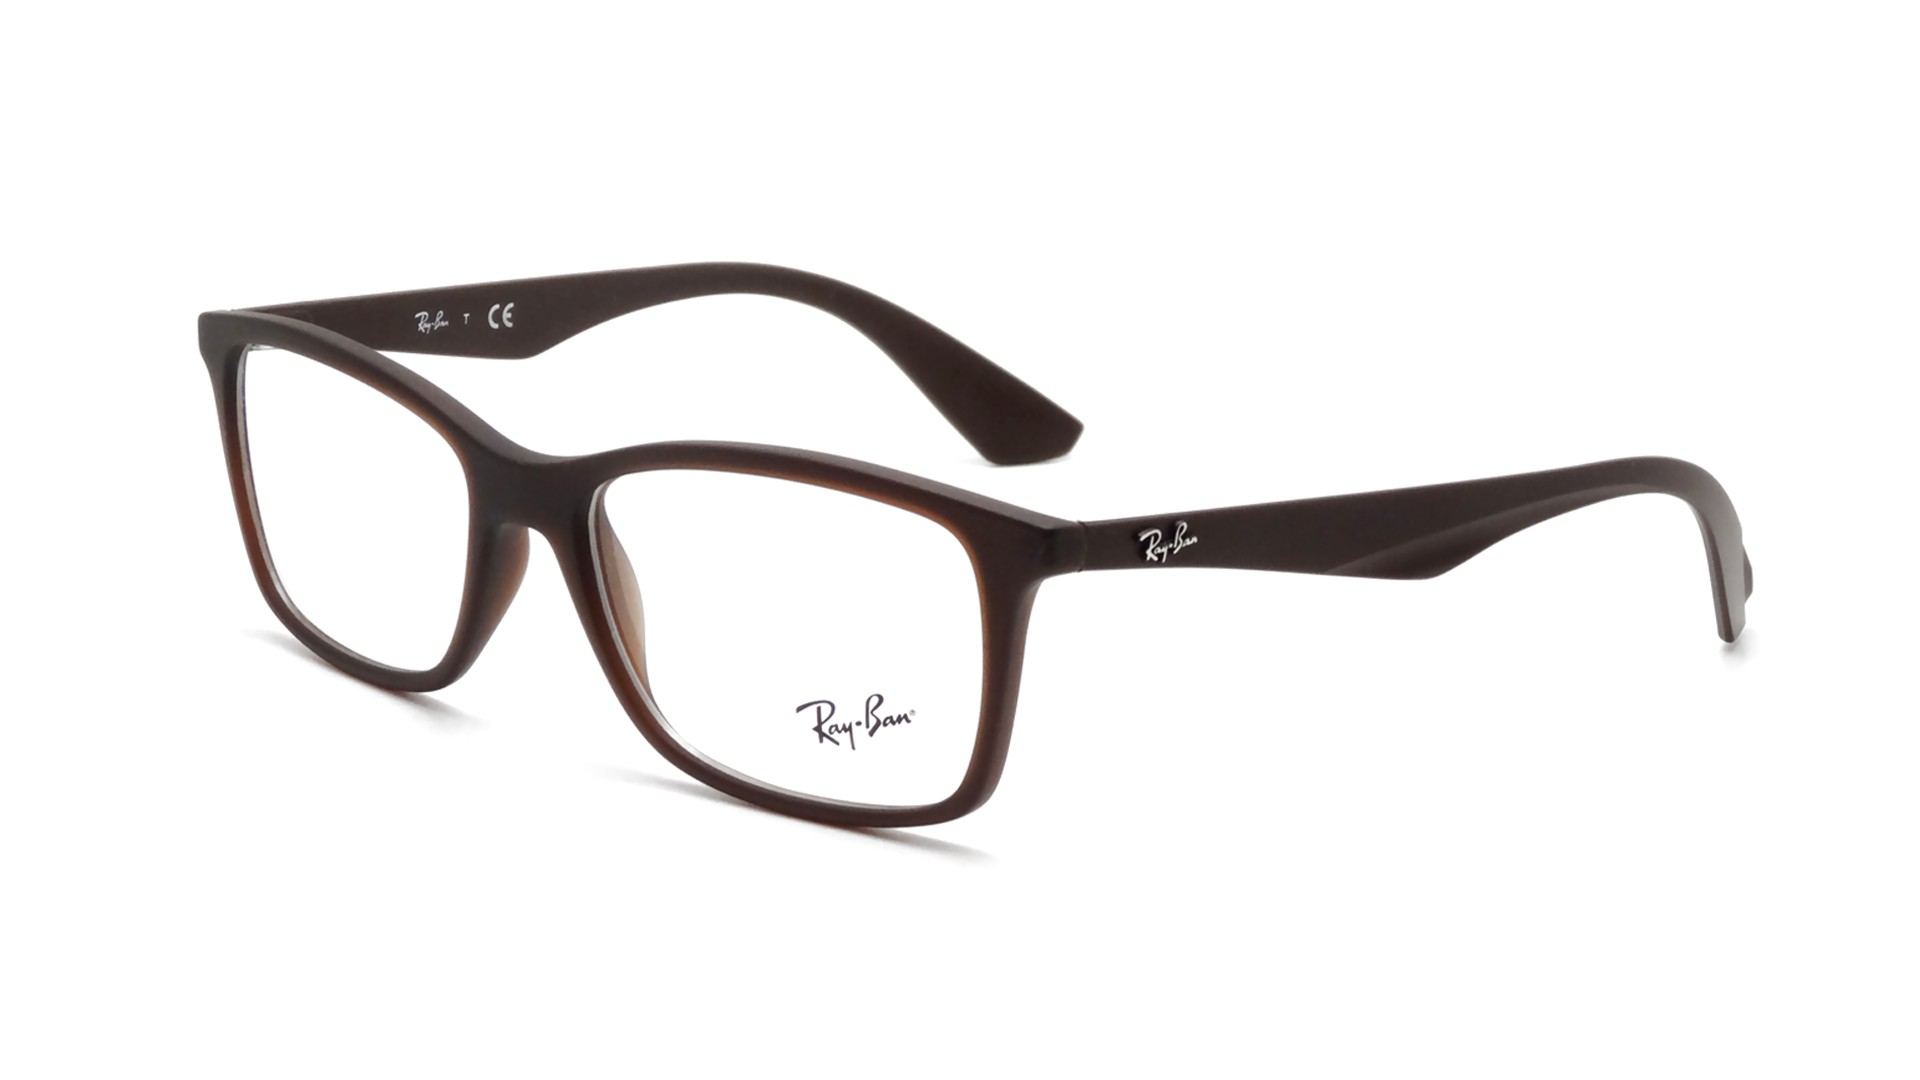 0d93cdcb21 Eyeglasses Ray-Ban Active Lifestyle Brown RX7047 RB7047 5451 54-17 Medium